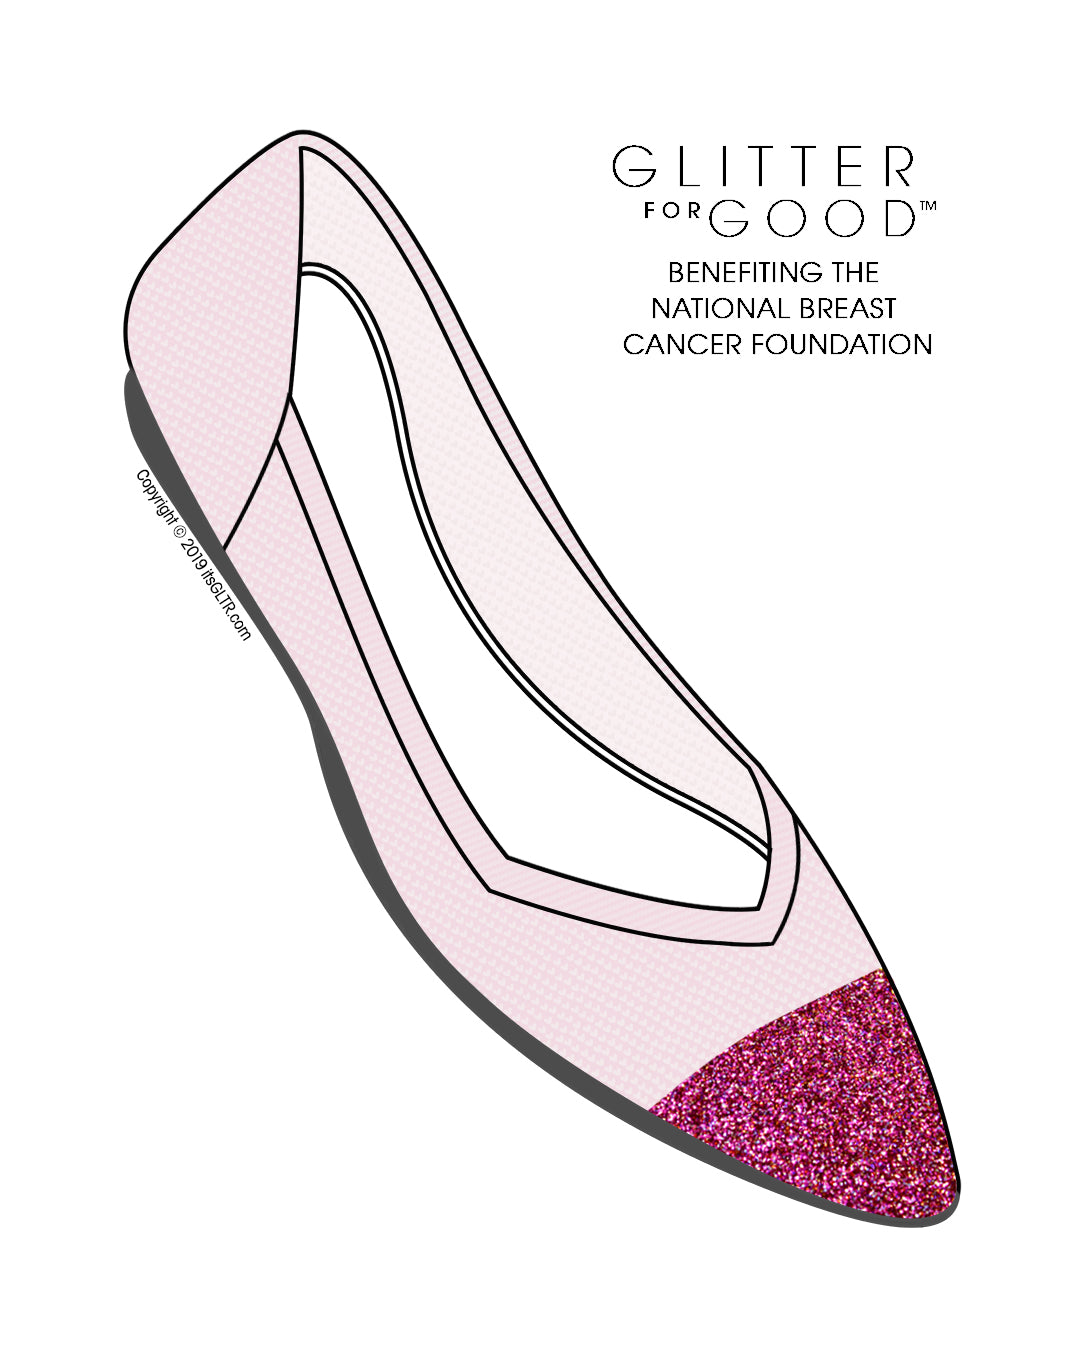 Special Edition Pink Glitter Captoe - Breast Cancer Awareness (Customization Only)